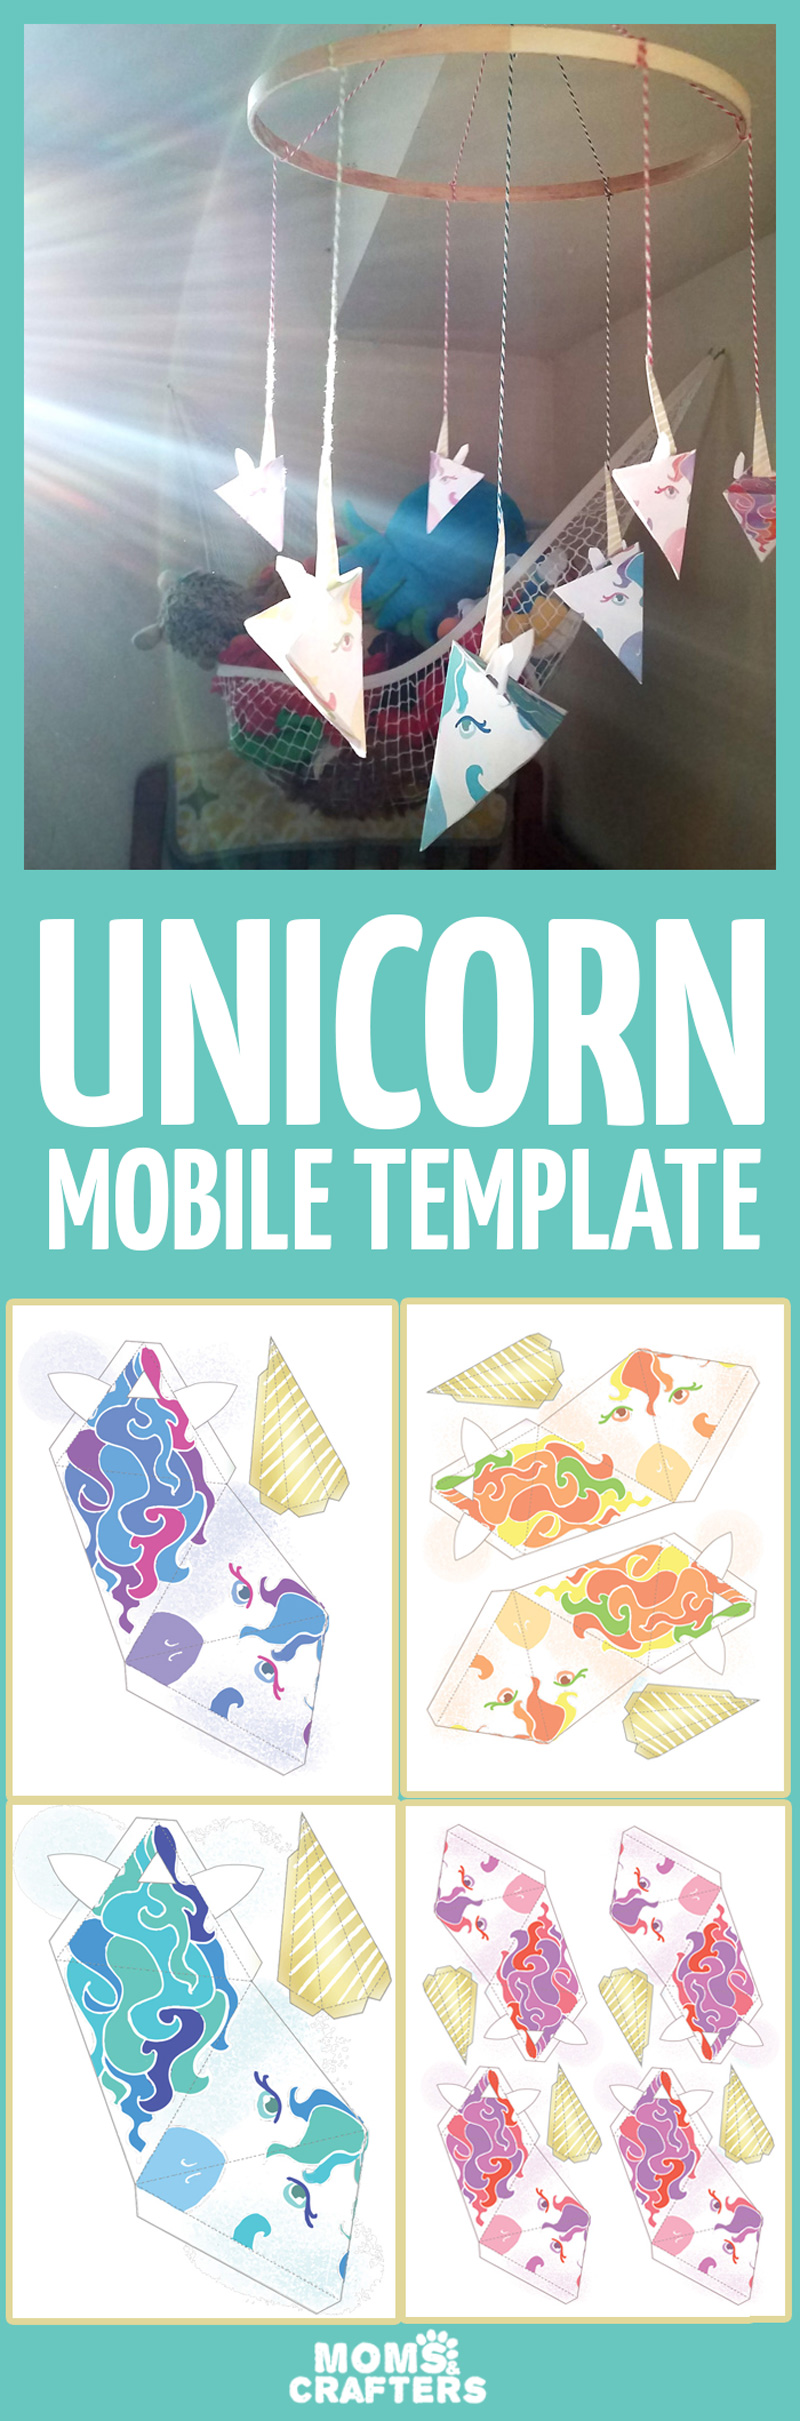 Unicorn Paper Craft Template - Make a Mobile! - Moms and Crafters